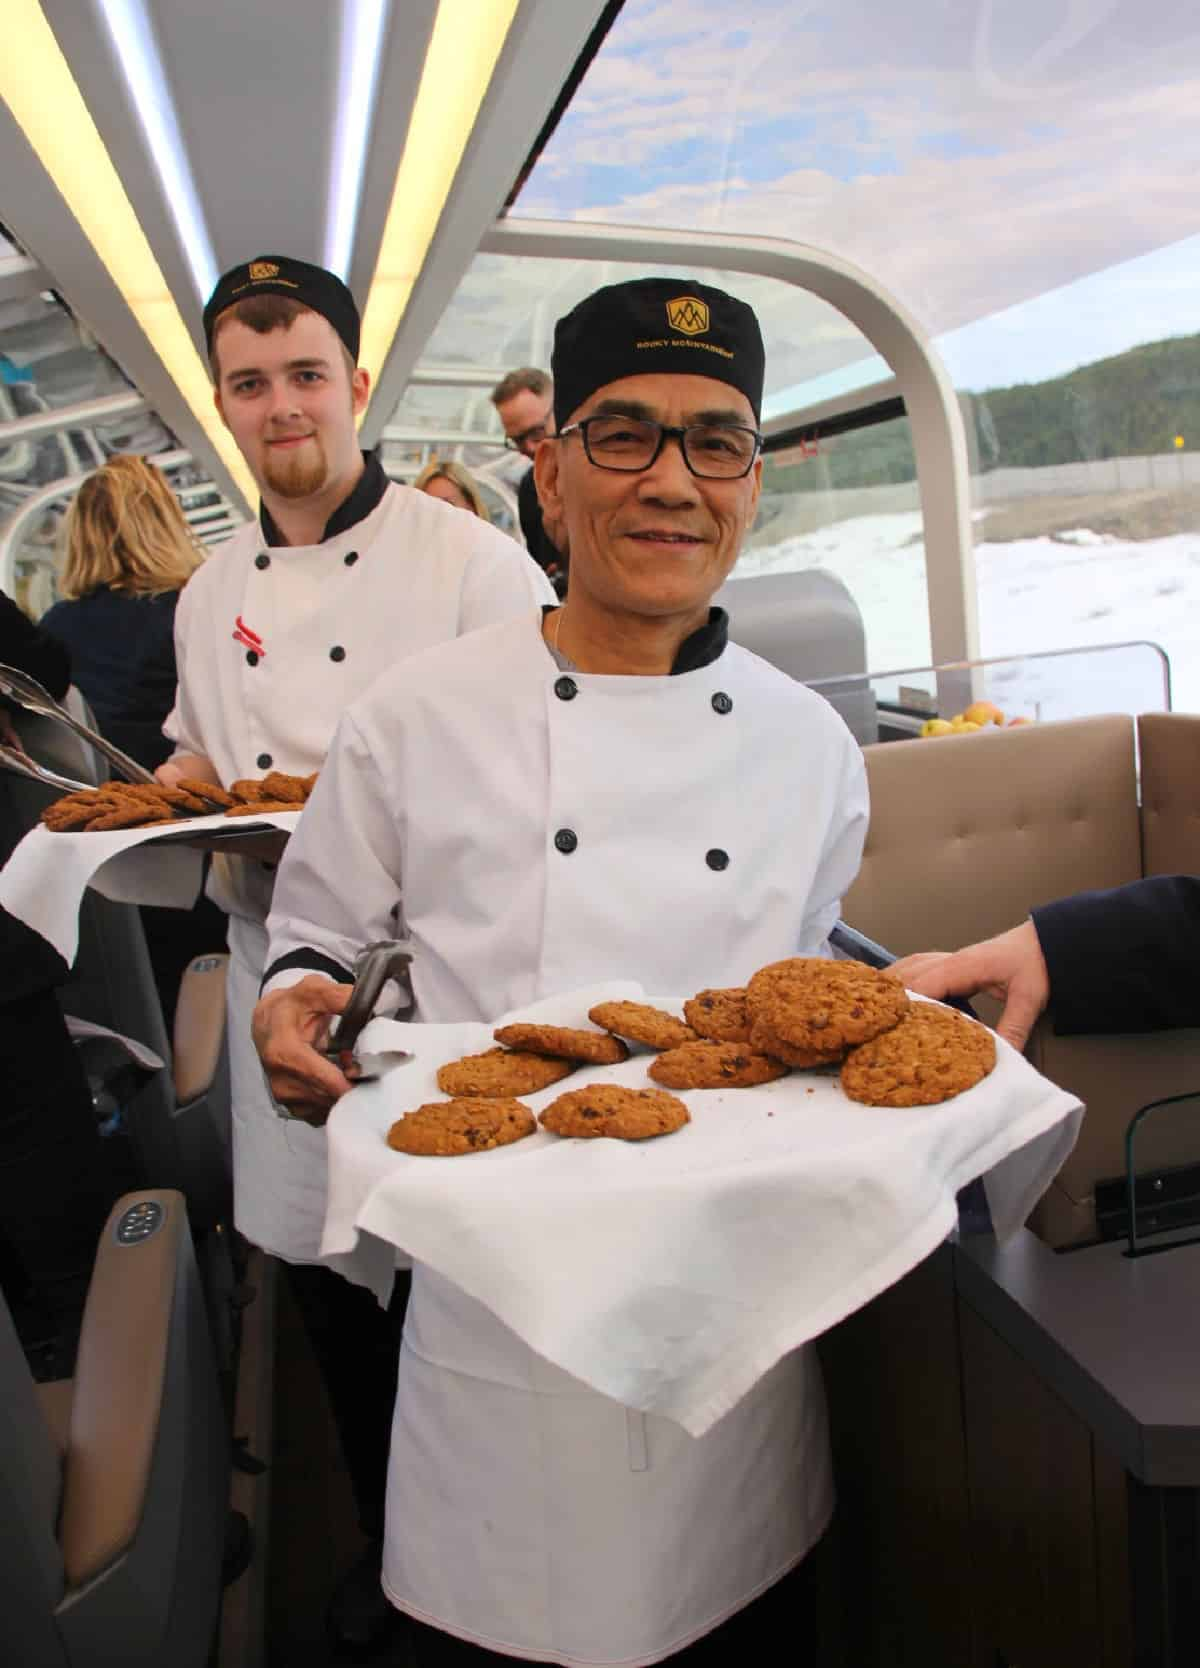 Men serving cookies on a train.